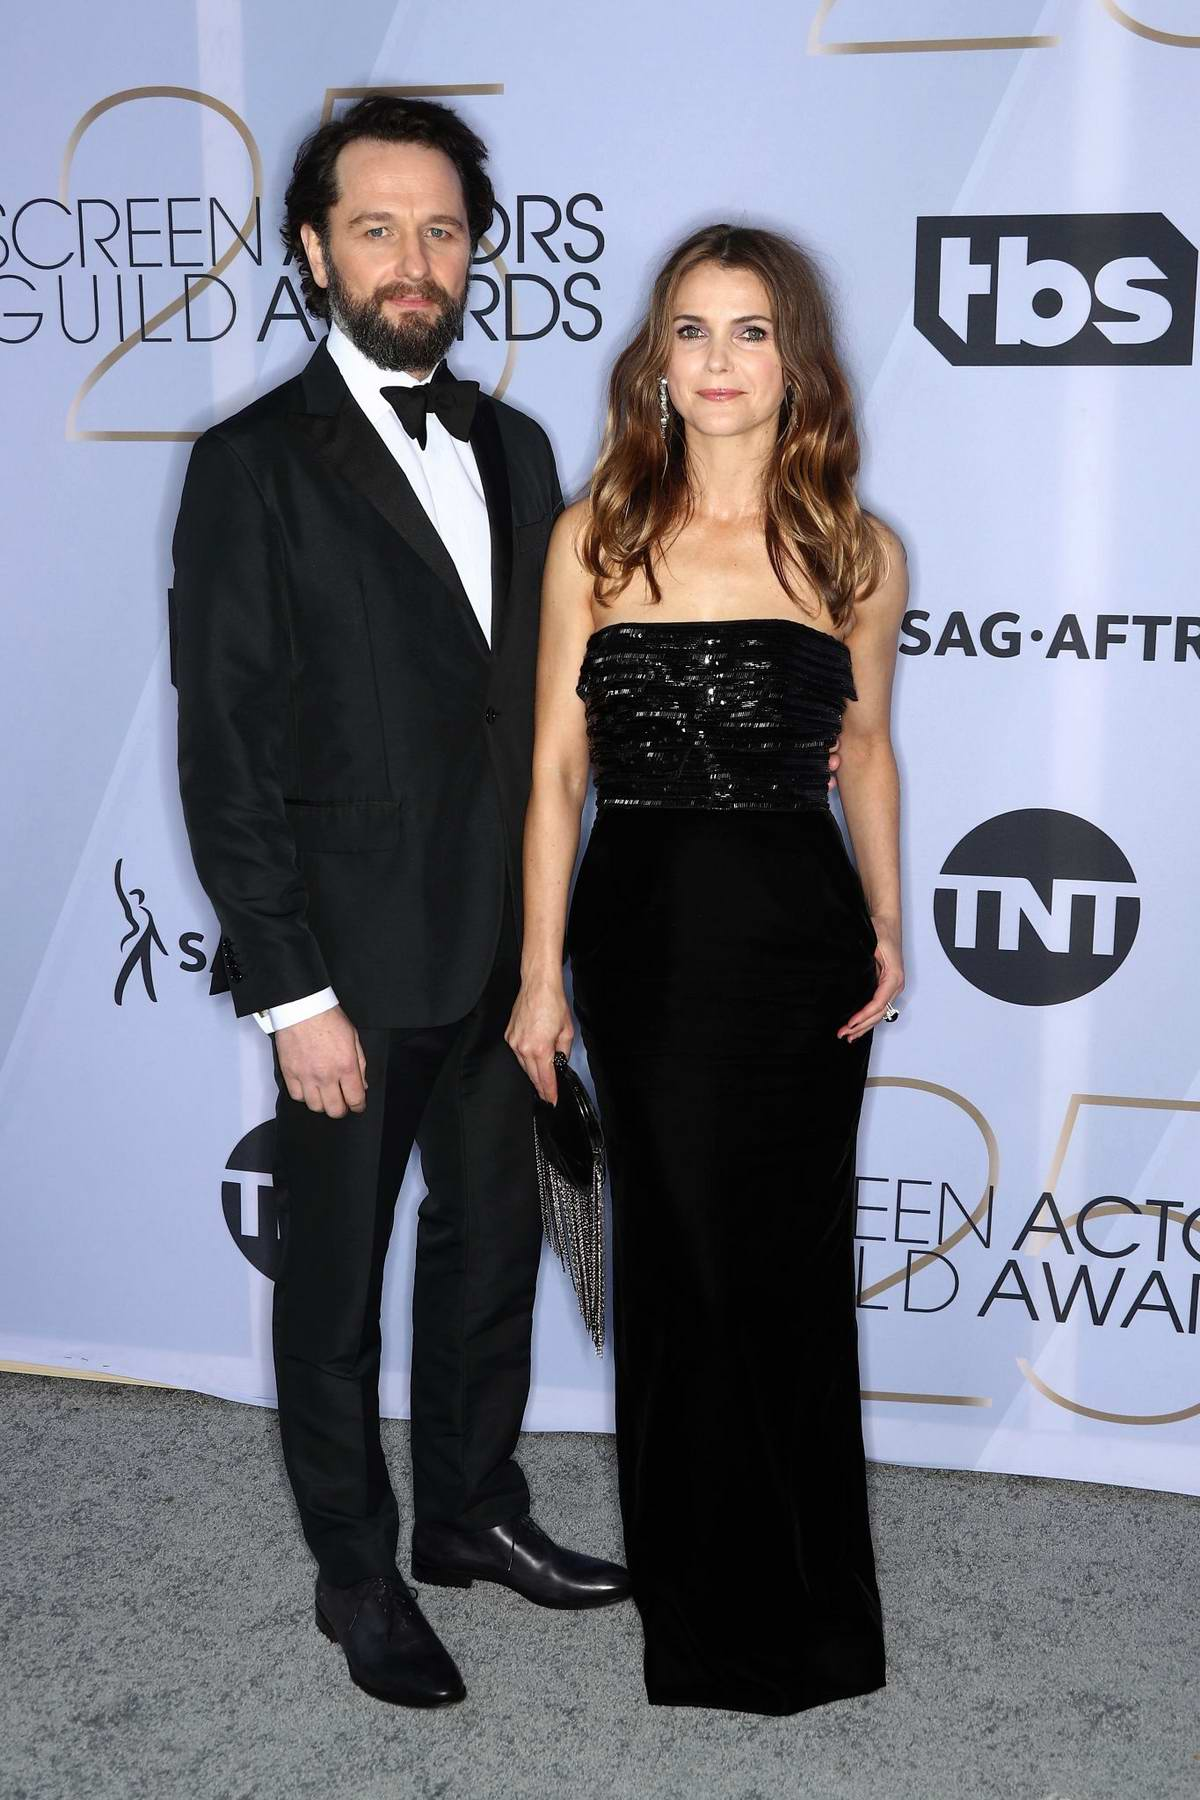 Keri Russell attends the 25th Annual Screen Actors Guild Awards (SAG 2019) at the Shrine Auditorium in Los Angeles